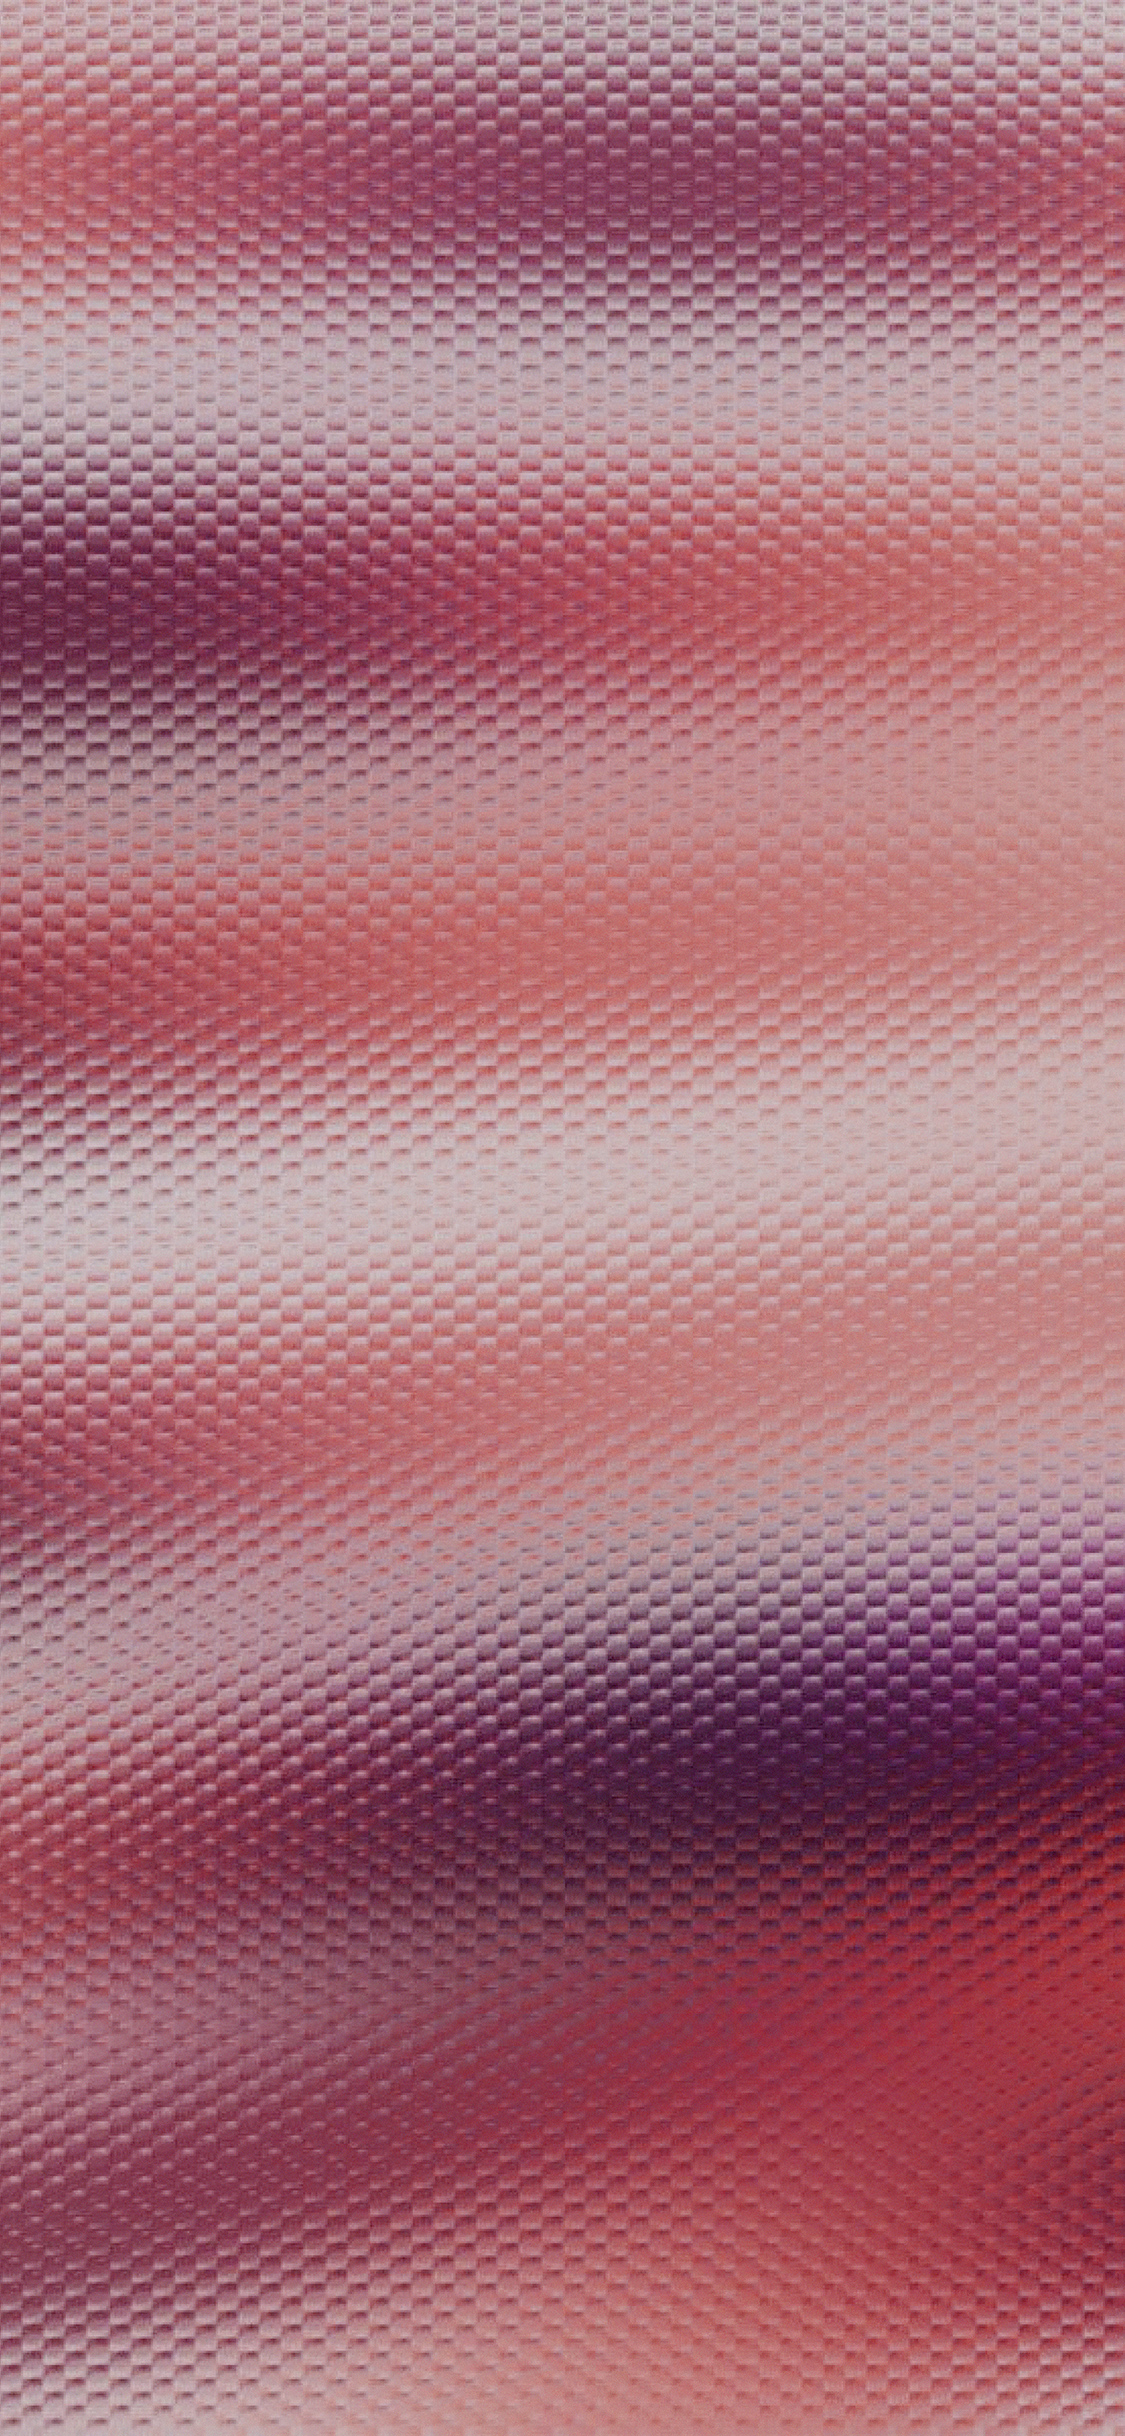 iPhoneXpapers.com-Apple-iPhone-wallpaper-vh02-fabric-texture-red-pattern